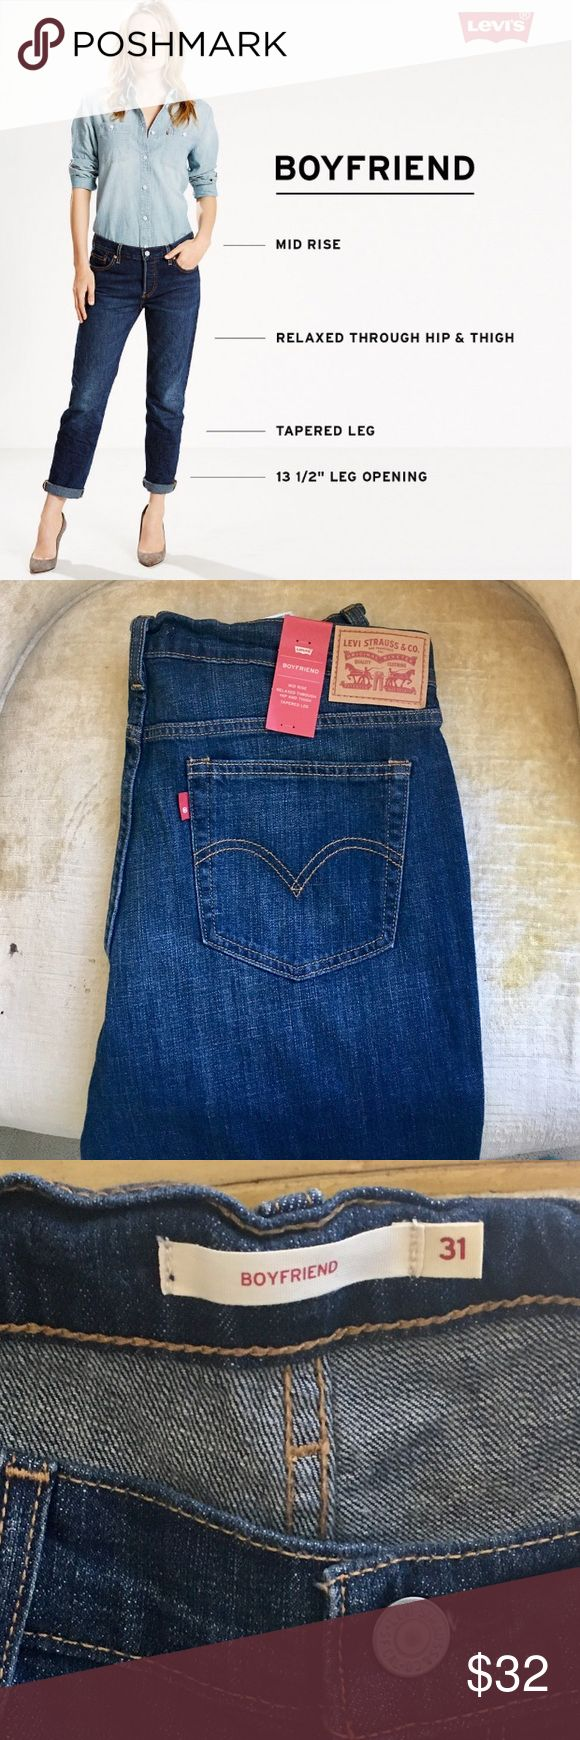 New!Levi's Women Boyfriend Jeans NWT Levi's Boyfriend Jeans. Steal his style and slip into these women's Levi's jeans, cut with a boyfriend fit and tapered leg. Bottoms can be cuffed or left uncuffed.   Zipper fly 25-in. inseam (cuffed) 27-in. inseam (uncuffed) Midrise sits at the hip Boyfriend cut is relaxed through hip & thigh, narrowing at the hem.   Machine wash 99% Cotton with 1% Elastane. Levi's Jeans Boyfriend